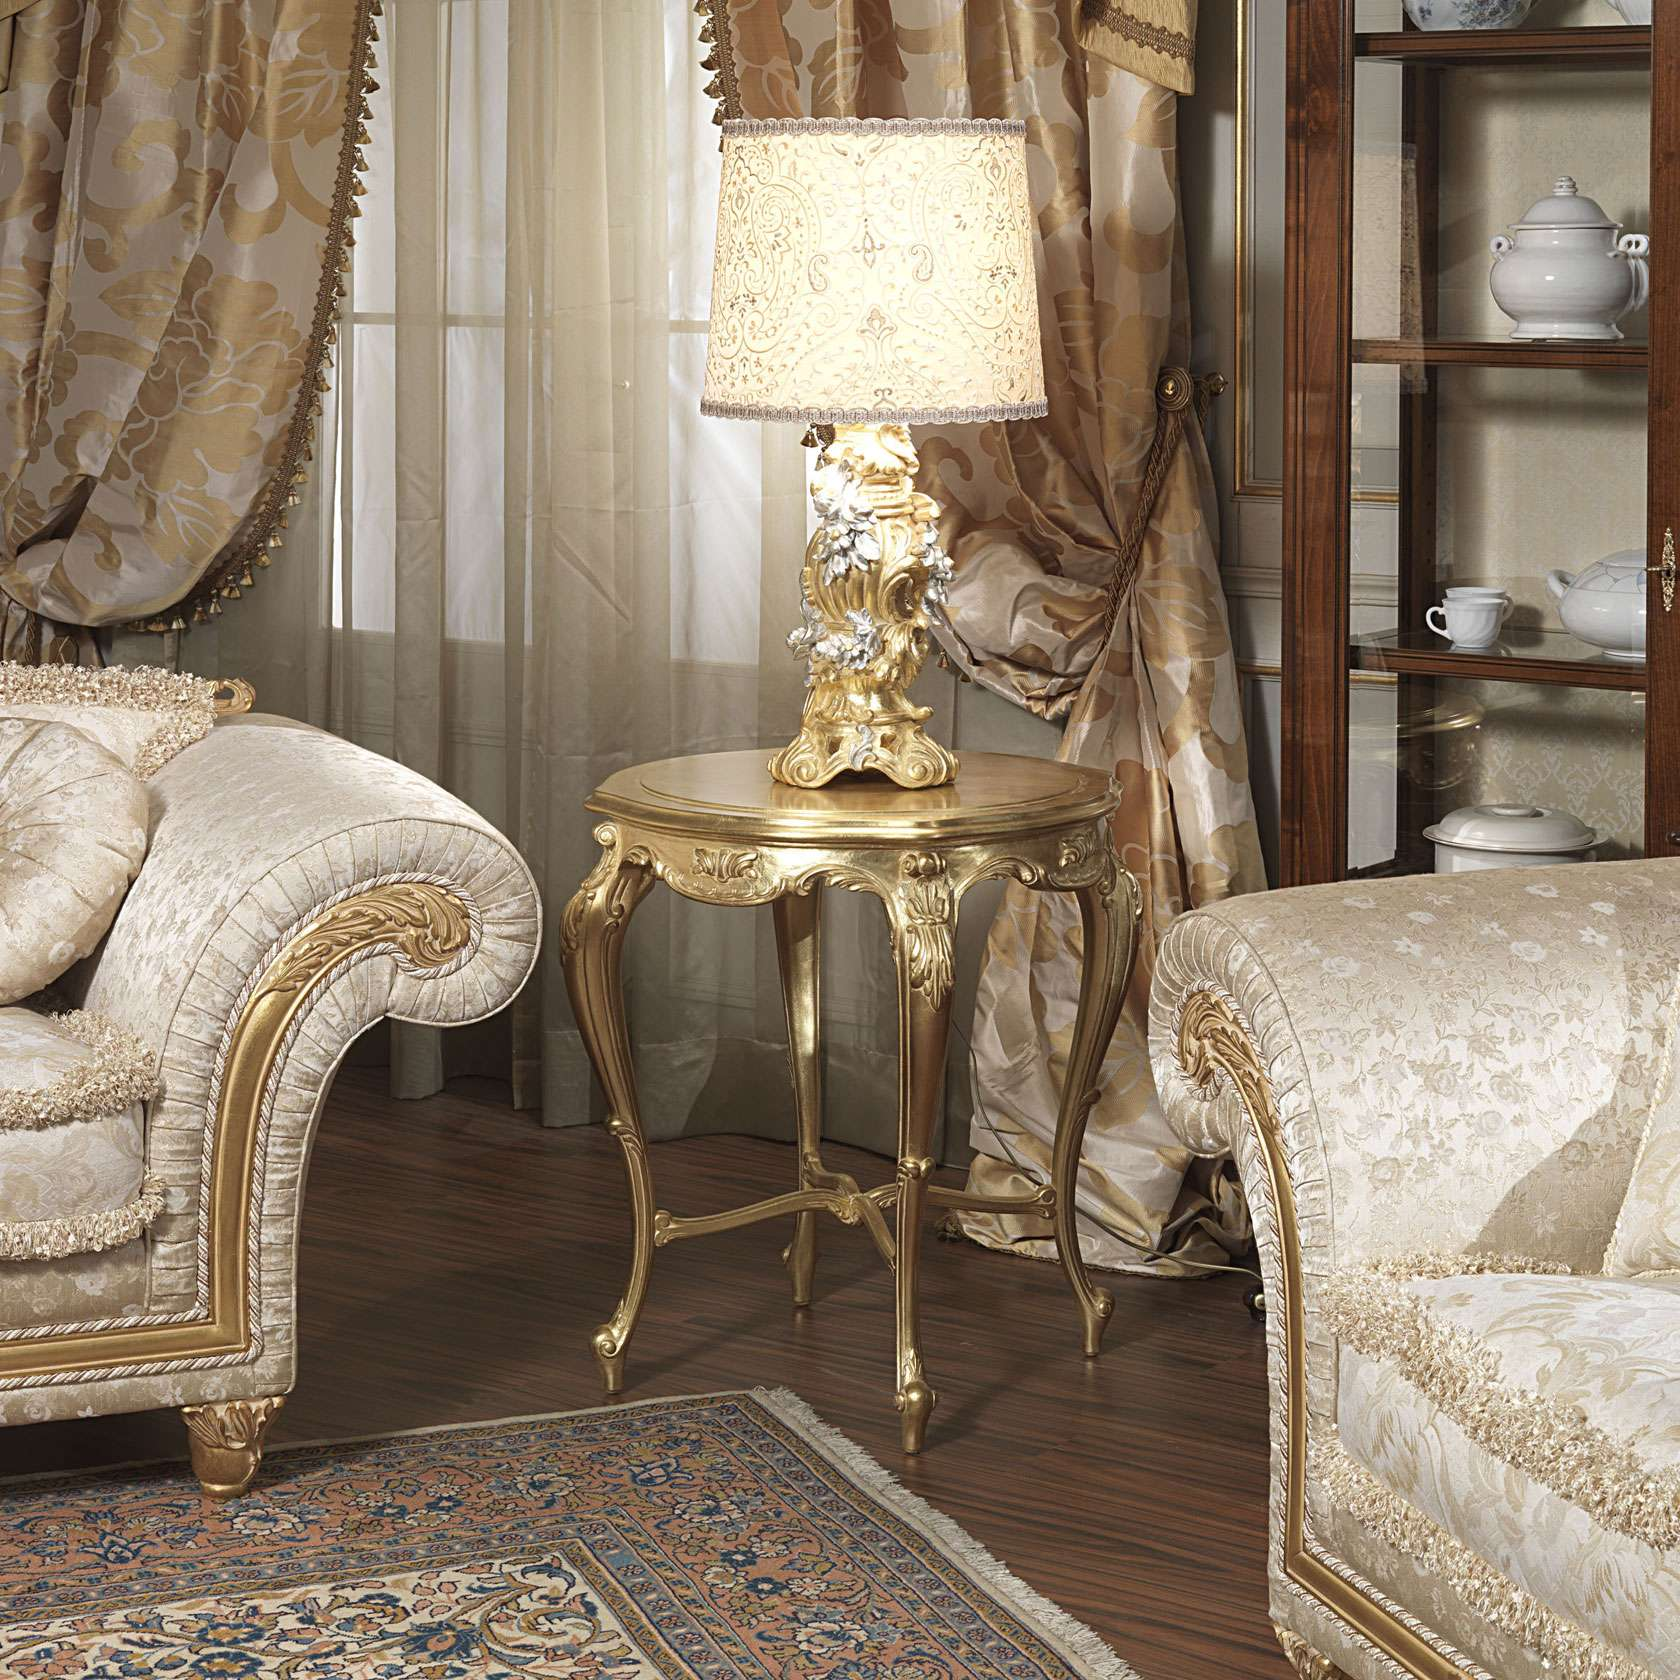 Imperial Coffee Table Classic Living Room Imperial Leather With Golden Small Table